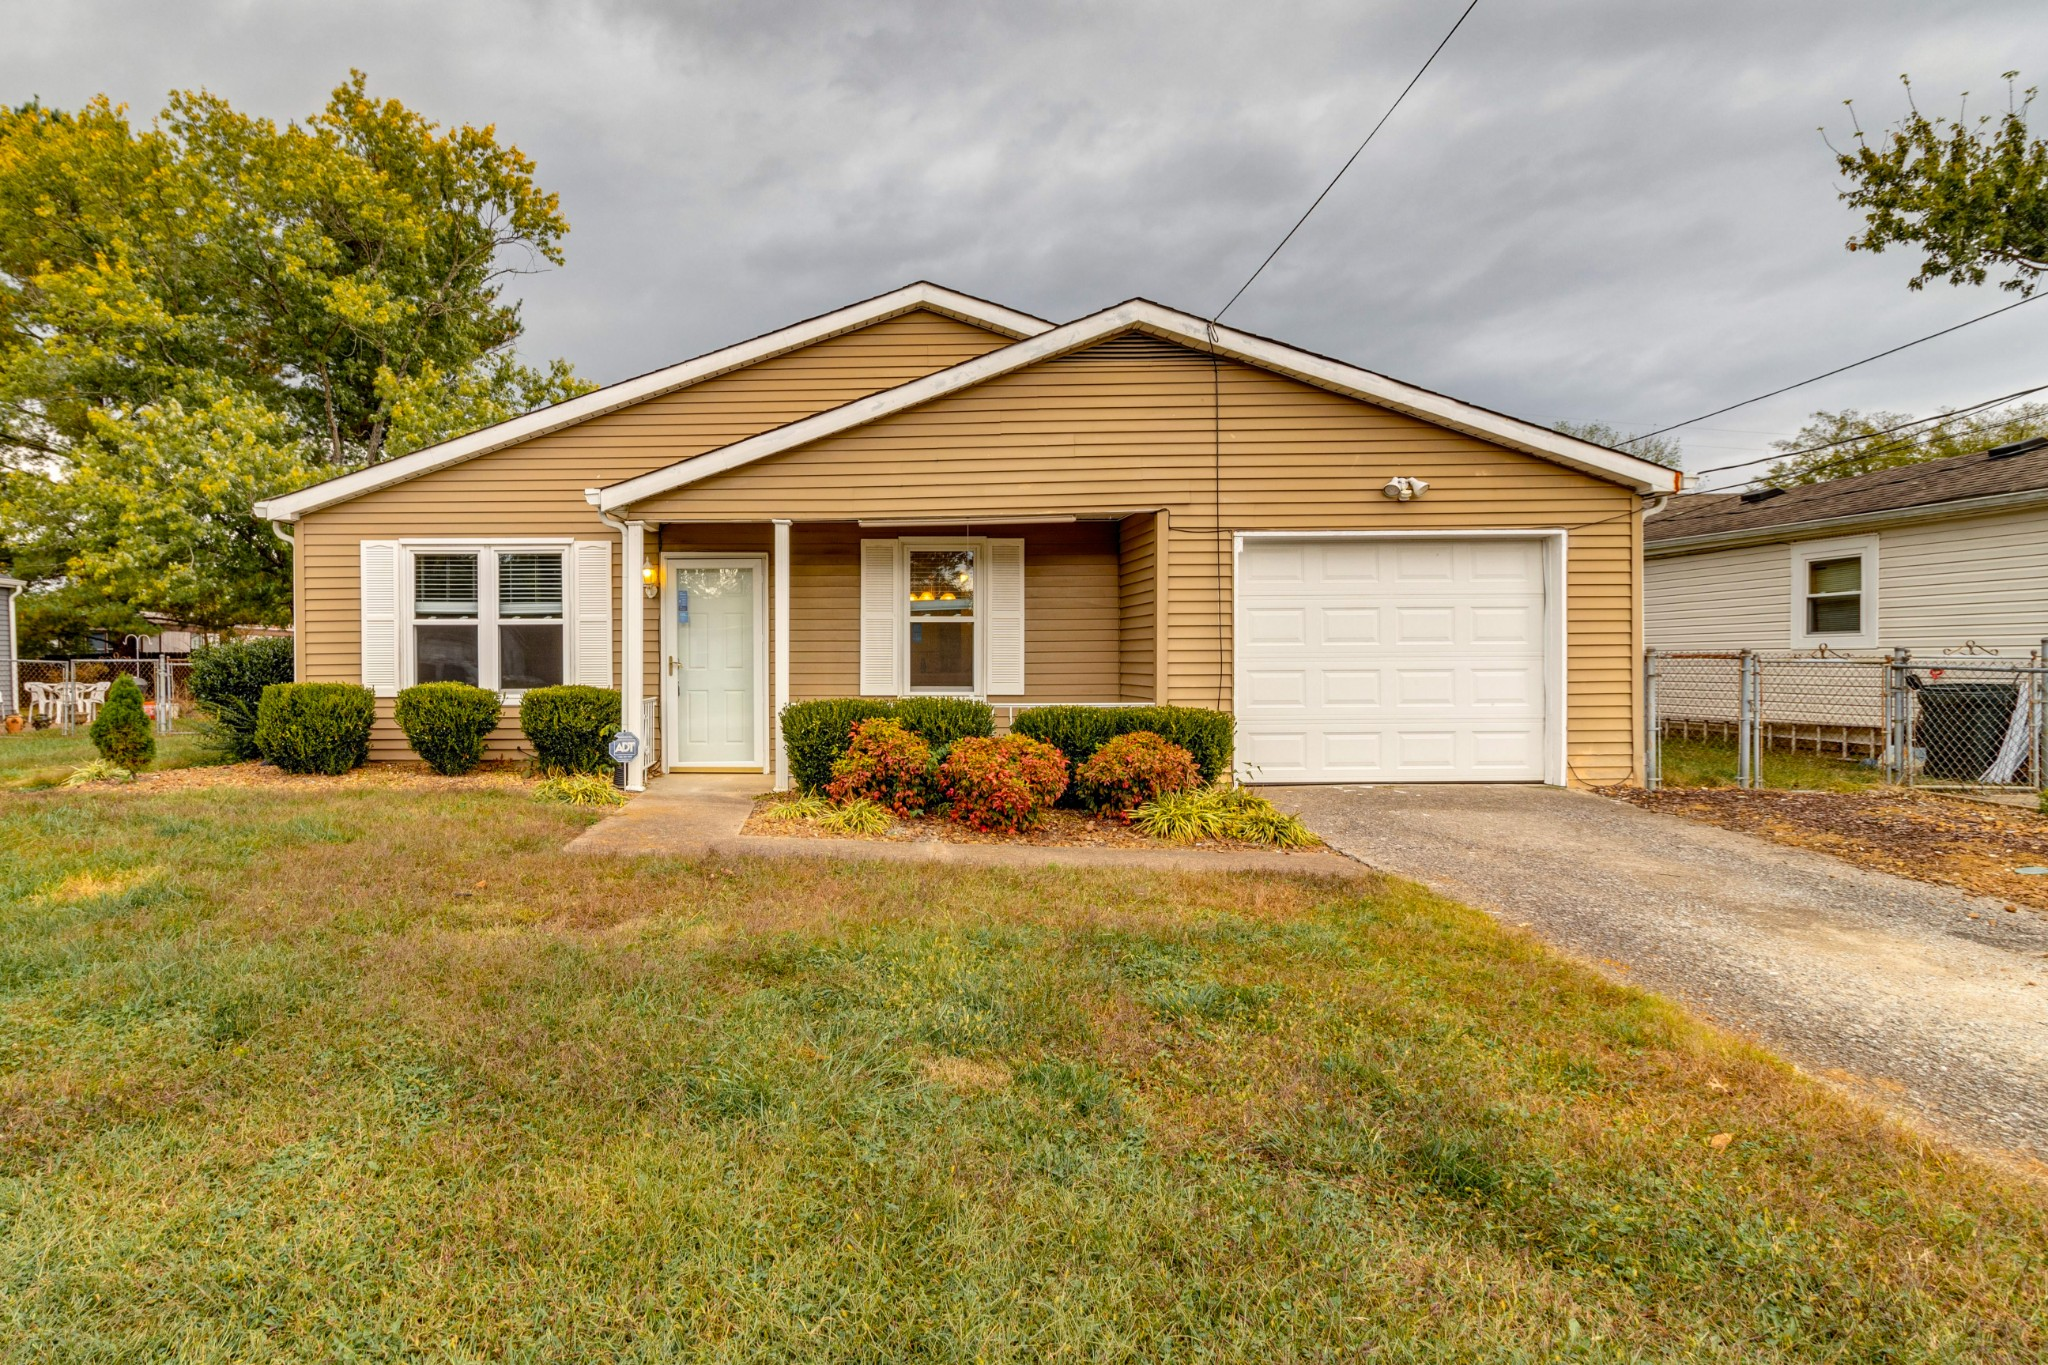 937 Mallow Dr Property Photo - Madison, TN real estate listing